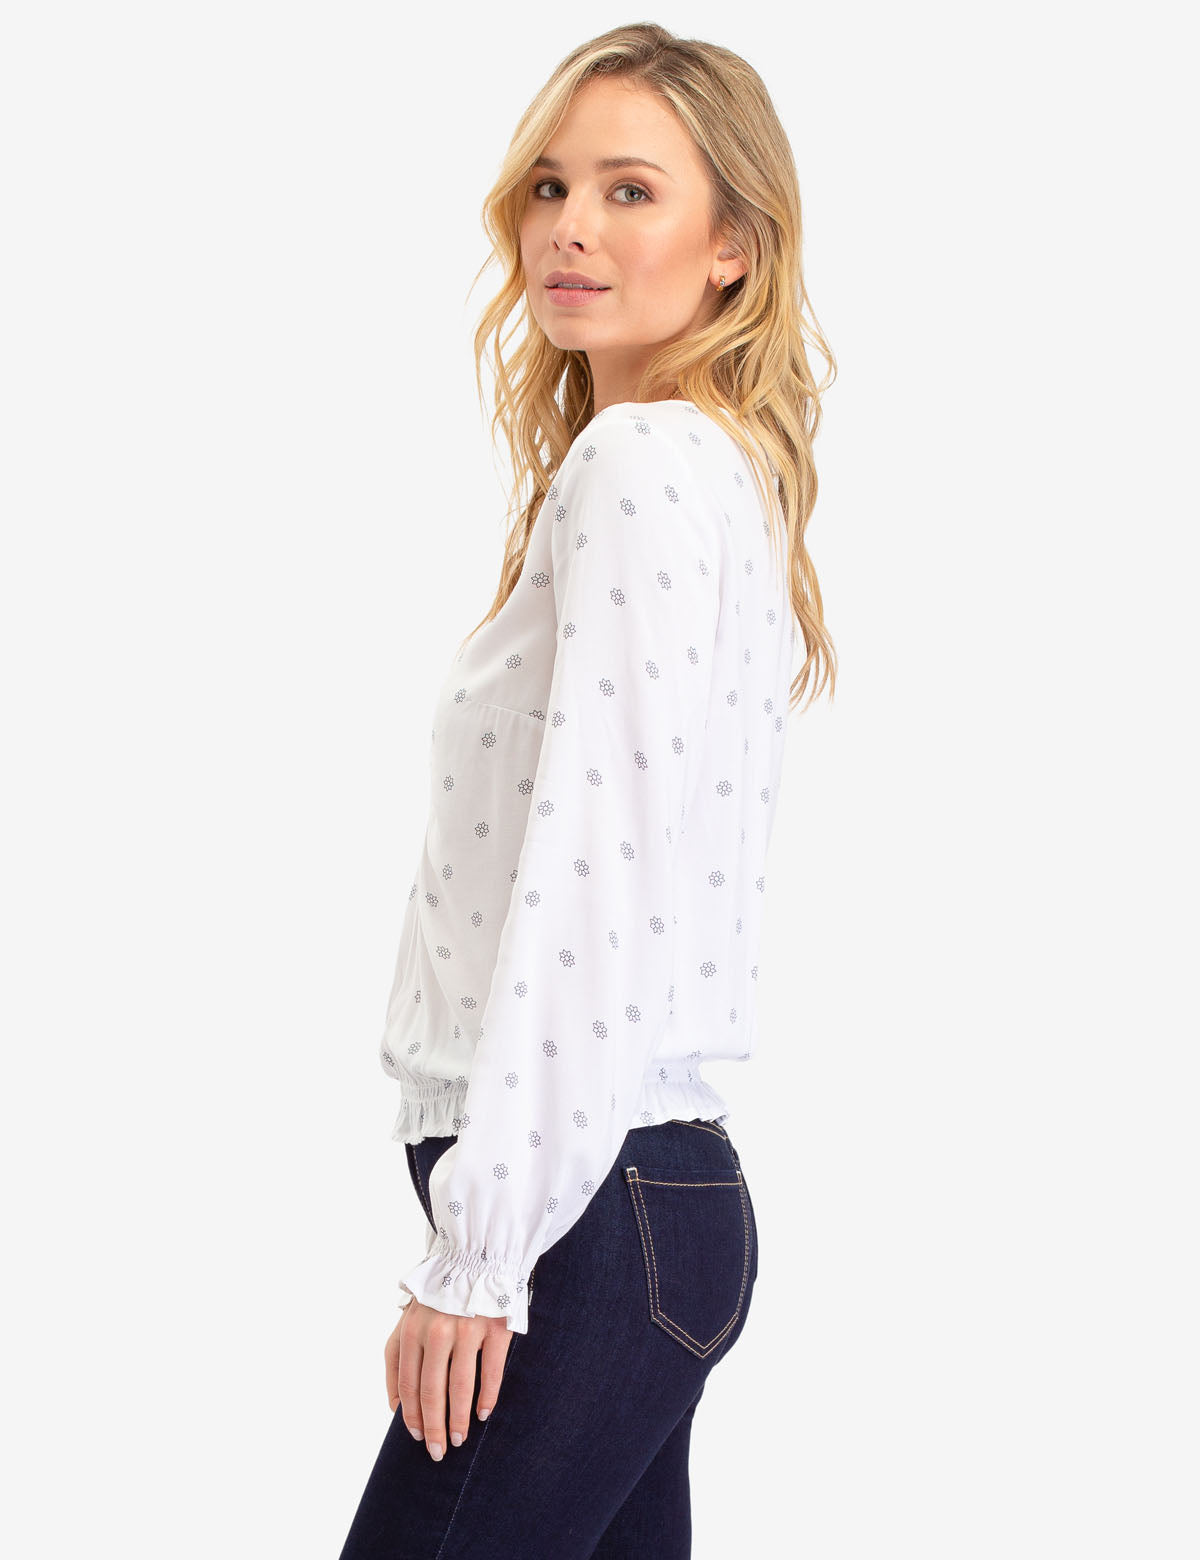 STAR PRINT RUFFLE SLEEVE TOP - U.S. Polo Assn.